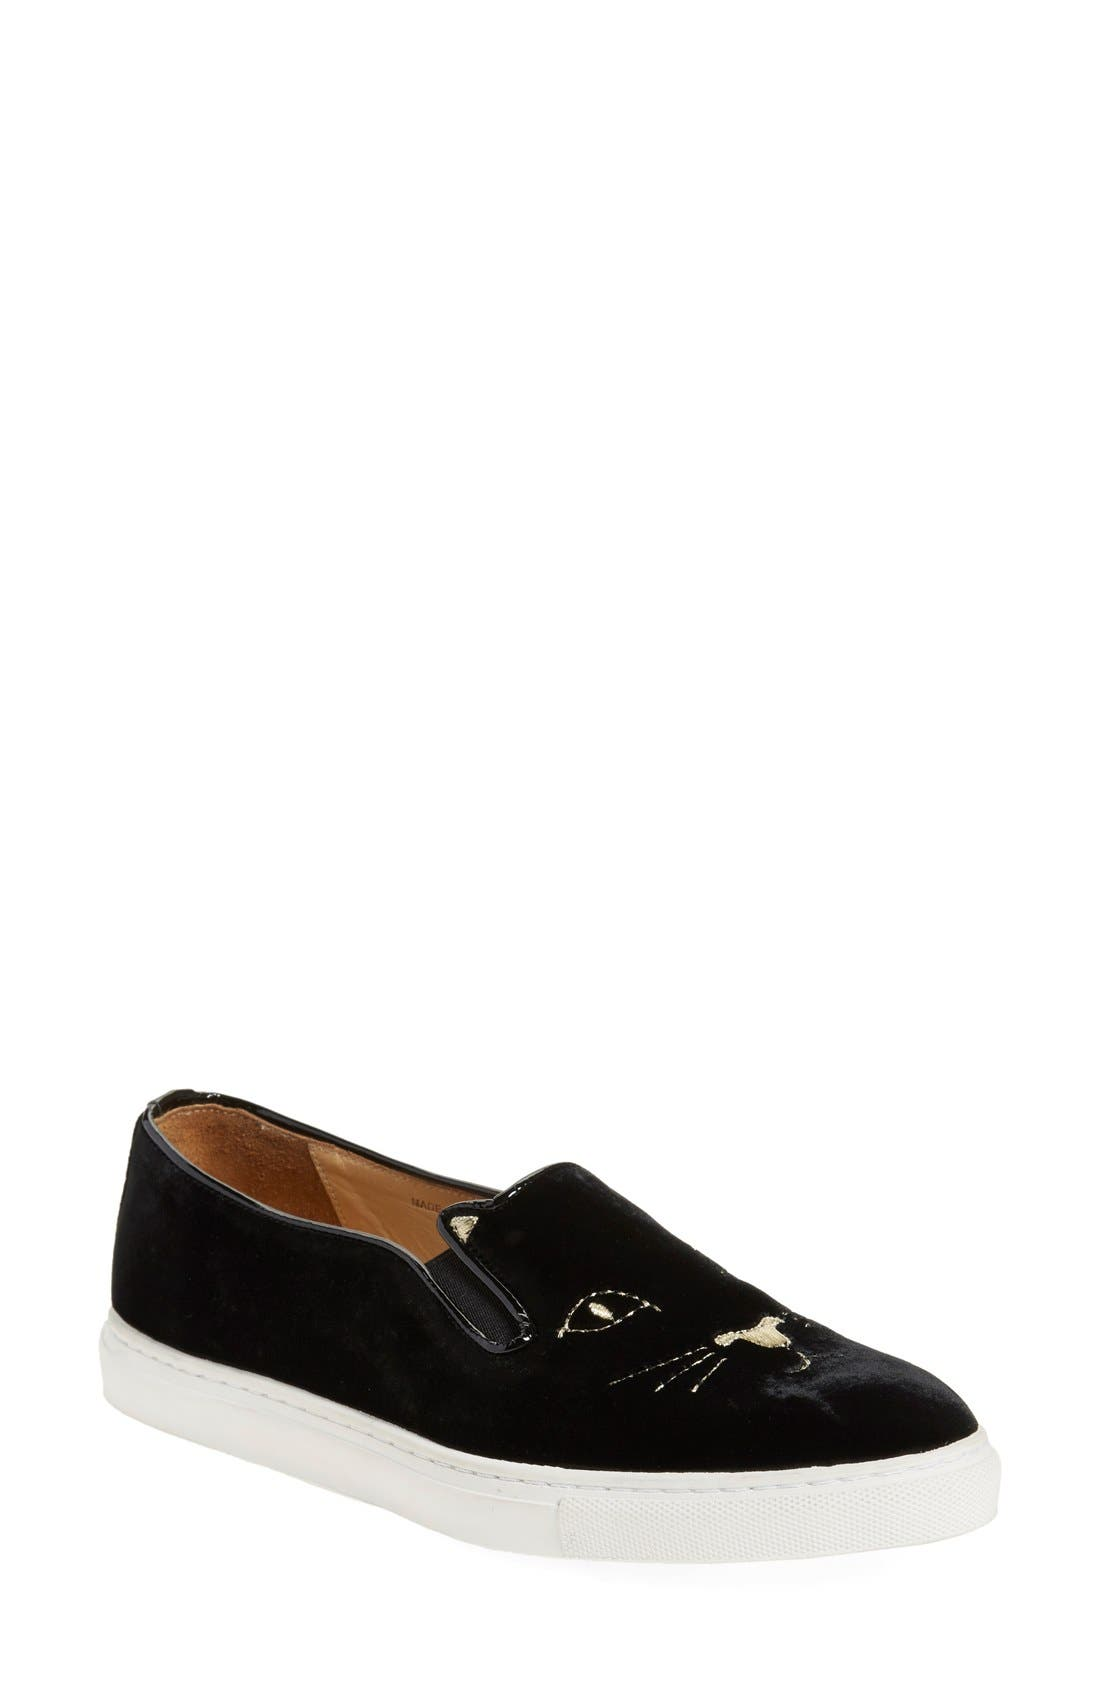 CHARLOTTE OLYMPIA Cool Cats Slip-On Sneaker